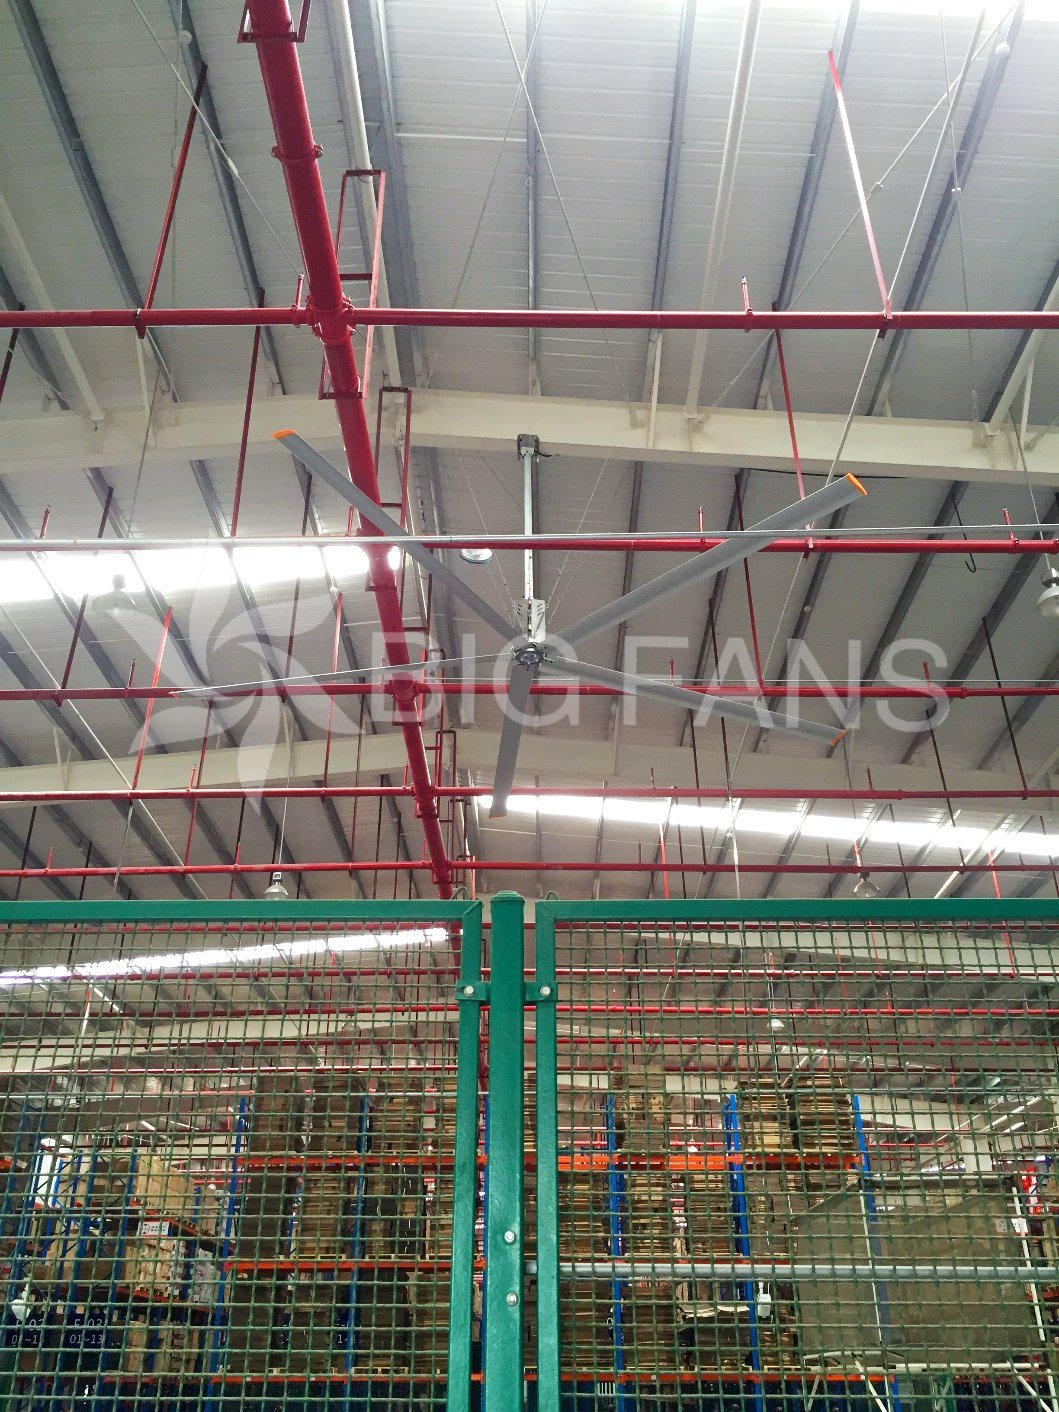 Large Ceiling Fan Hvls Automatic Industrial Giant Ceiling Fan / Fan of Ceiling/7.4m (24.3FT)